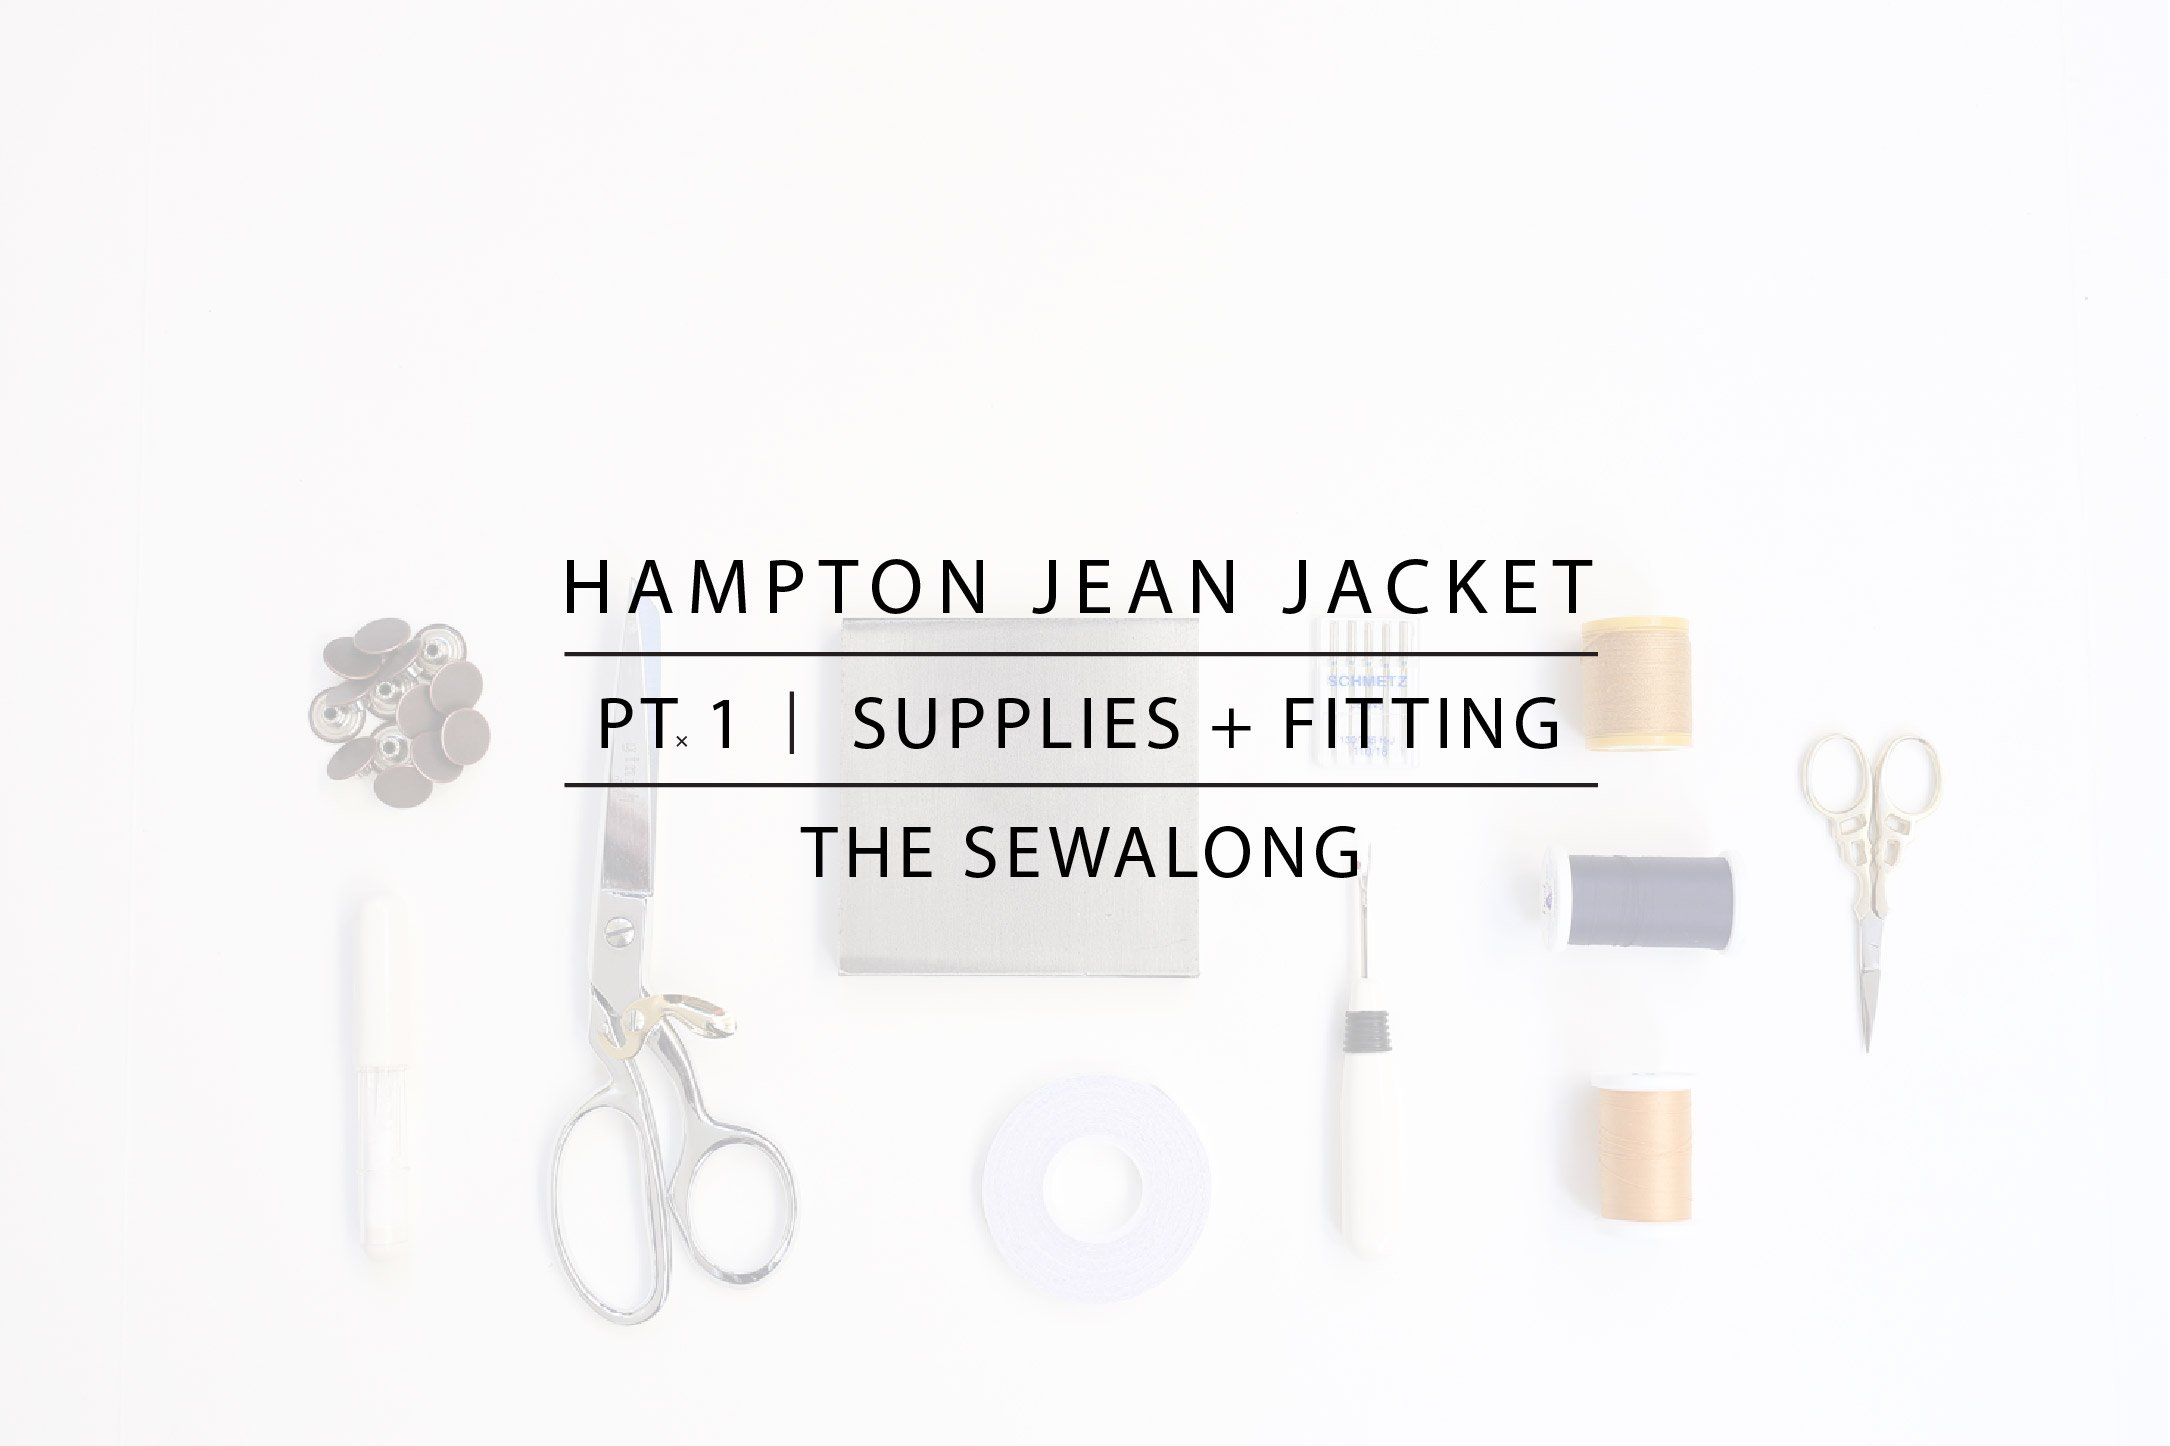 Hampton Jean Jacket Sewalong Pt. 1